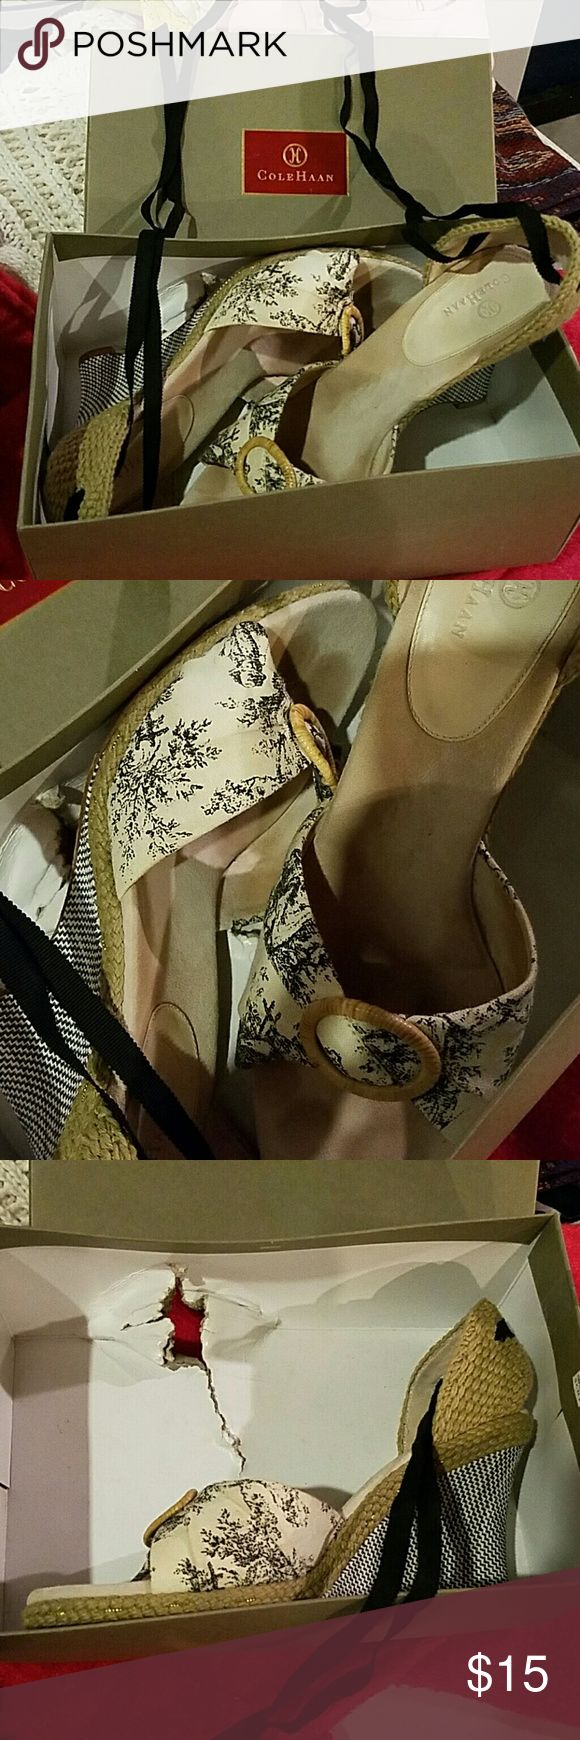 Cole Haan Espadrillas Box is damaged.  Otherwise good condition.  This is a French Toile print. These are gorgeous! Cole Haan Shoes Espadrilles